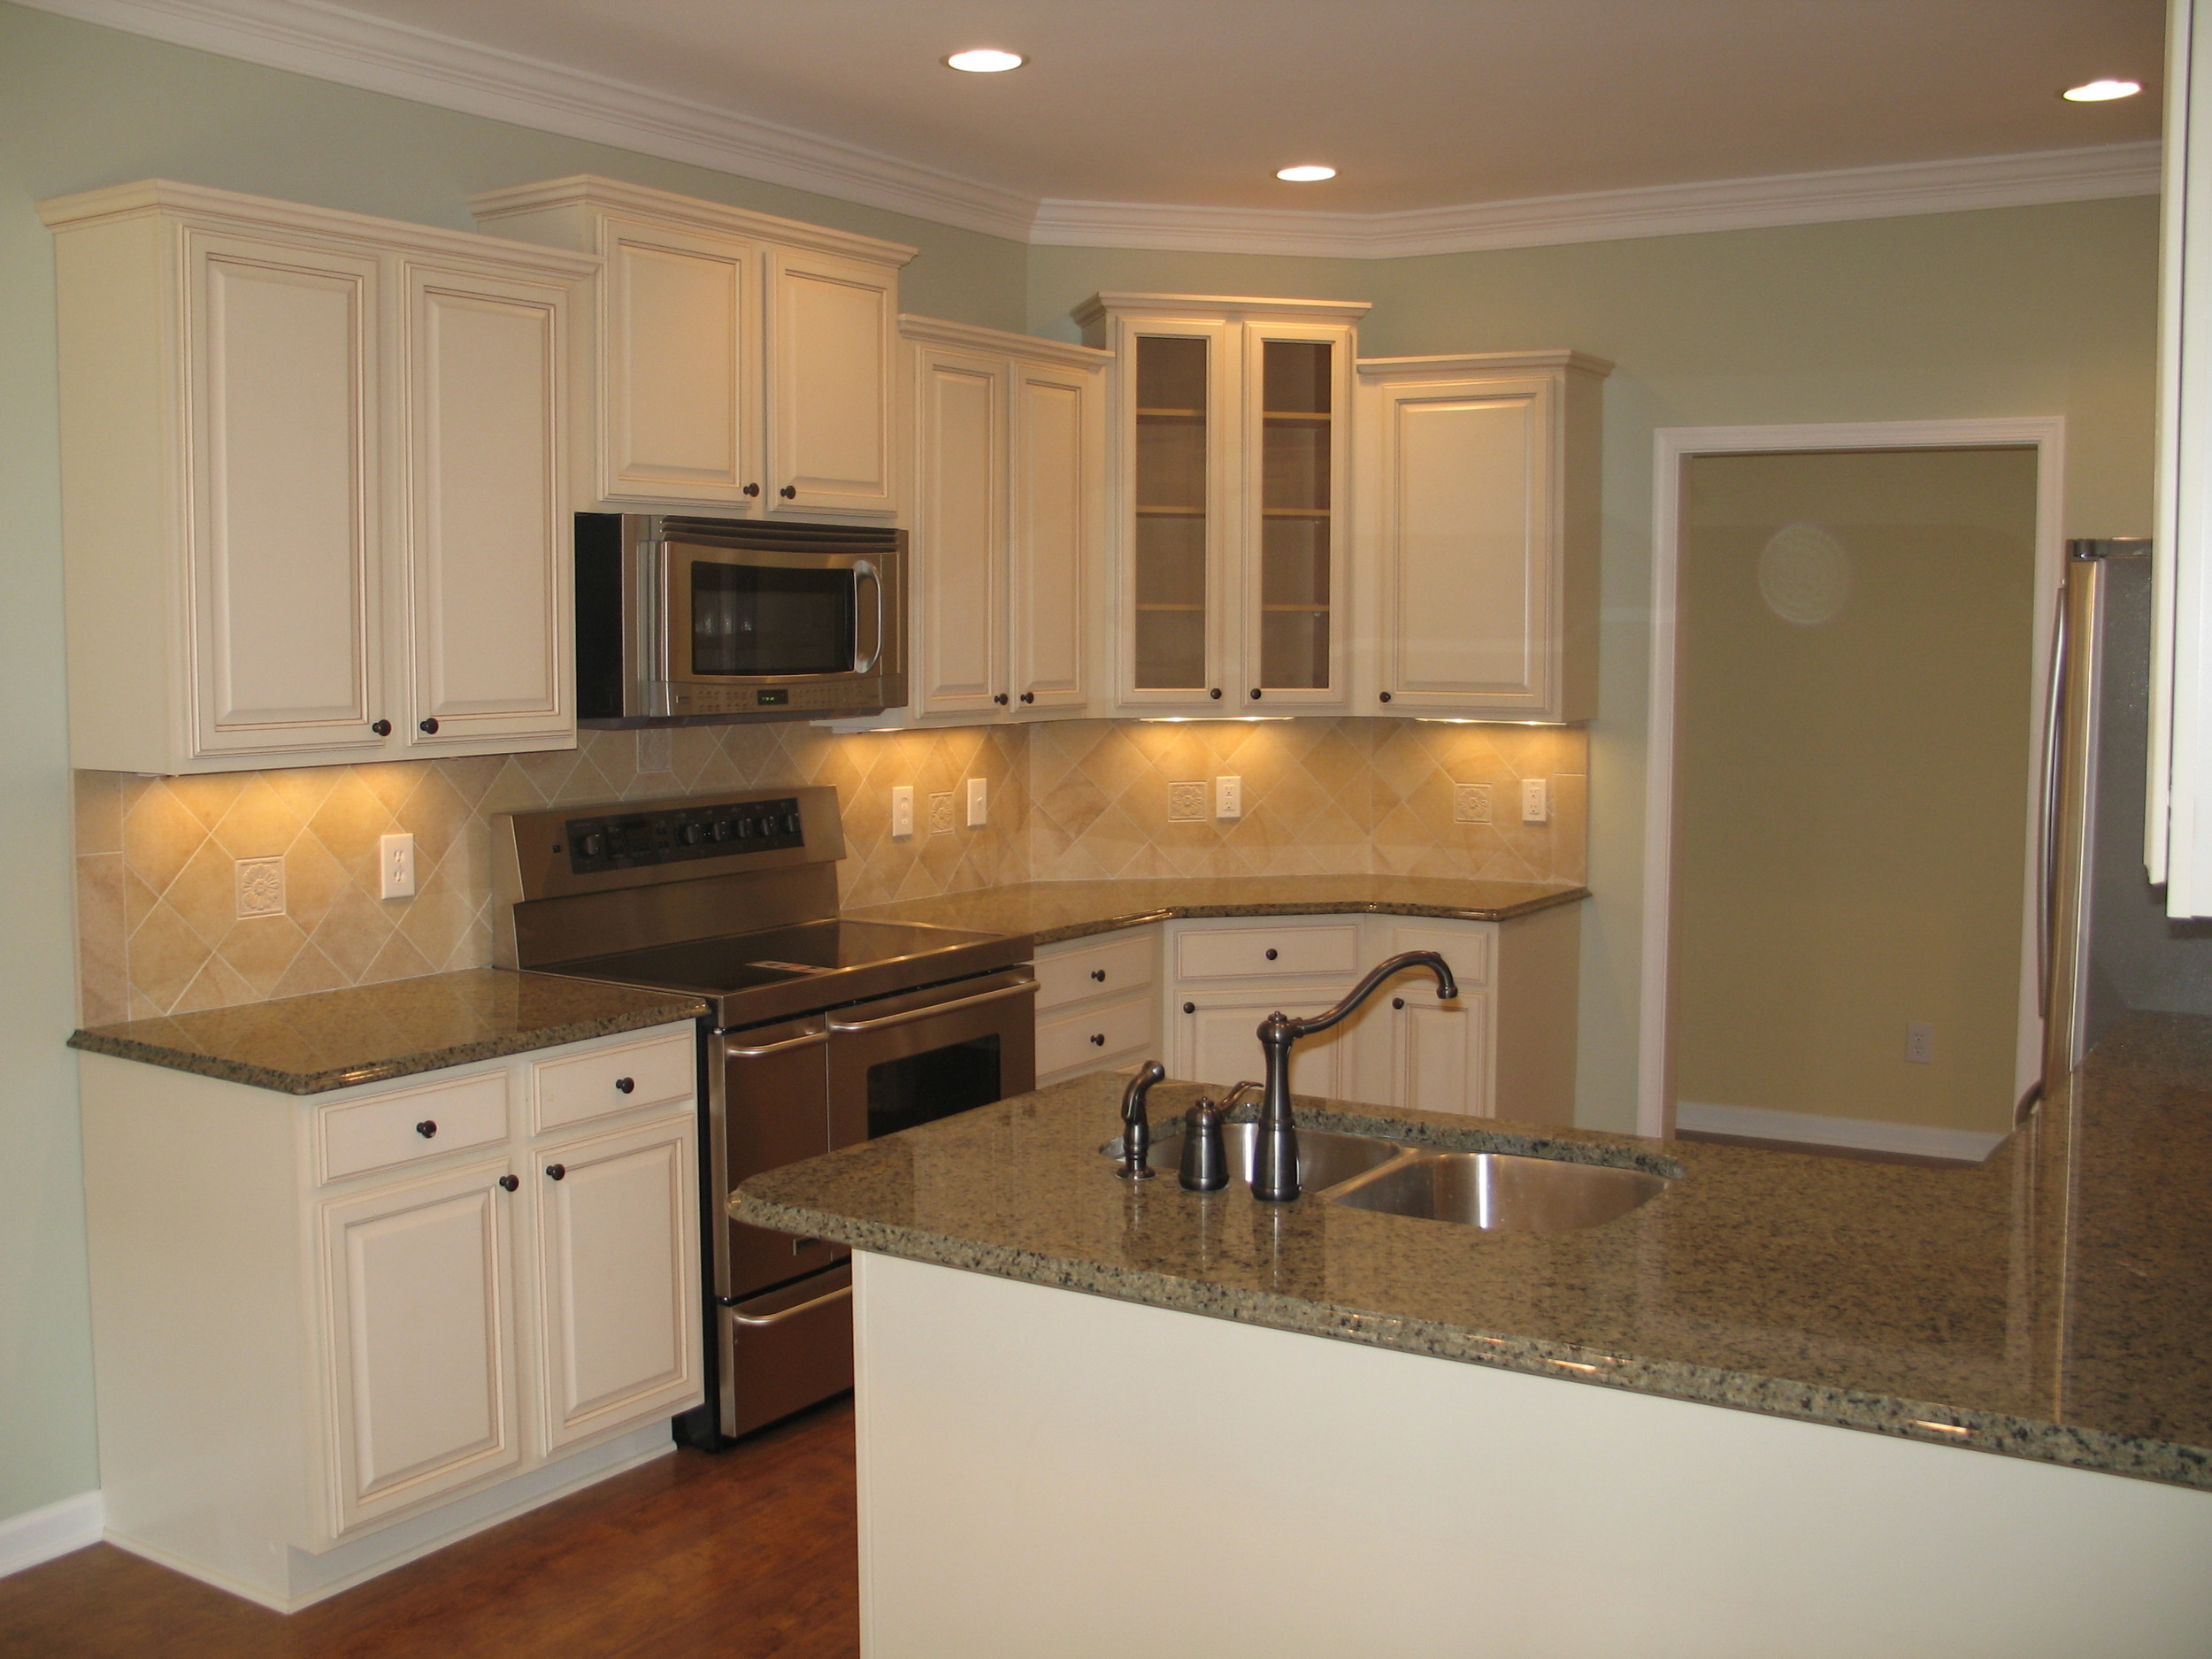 Farmington Lot 33 Kitchen Looking at Range.jpg